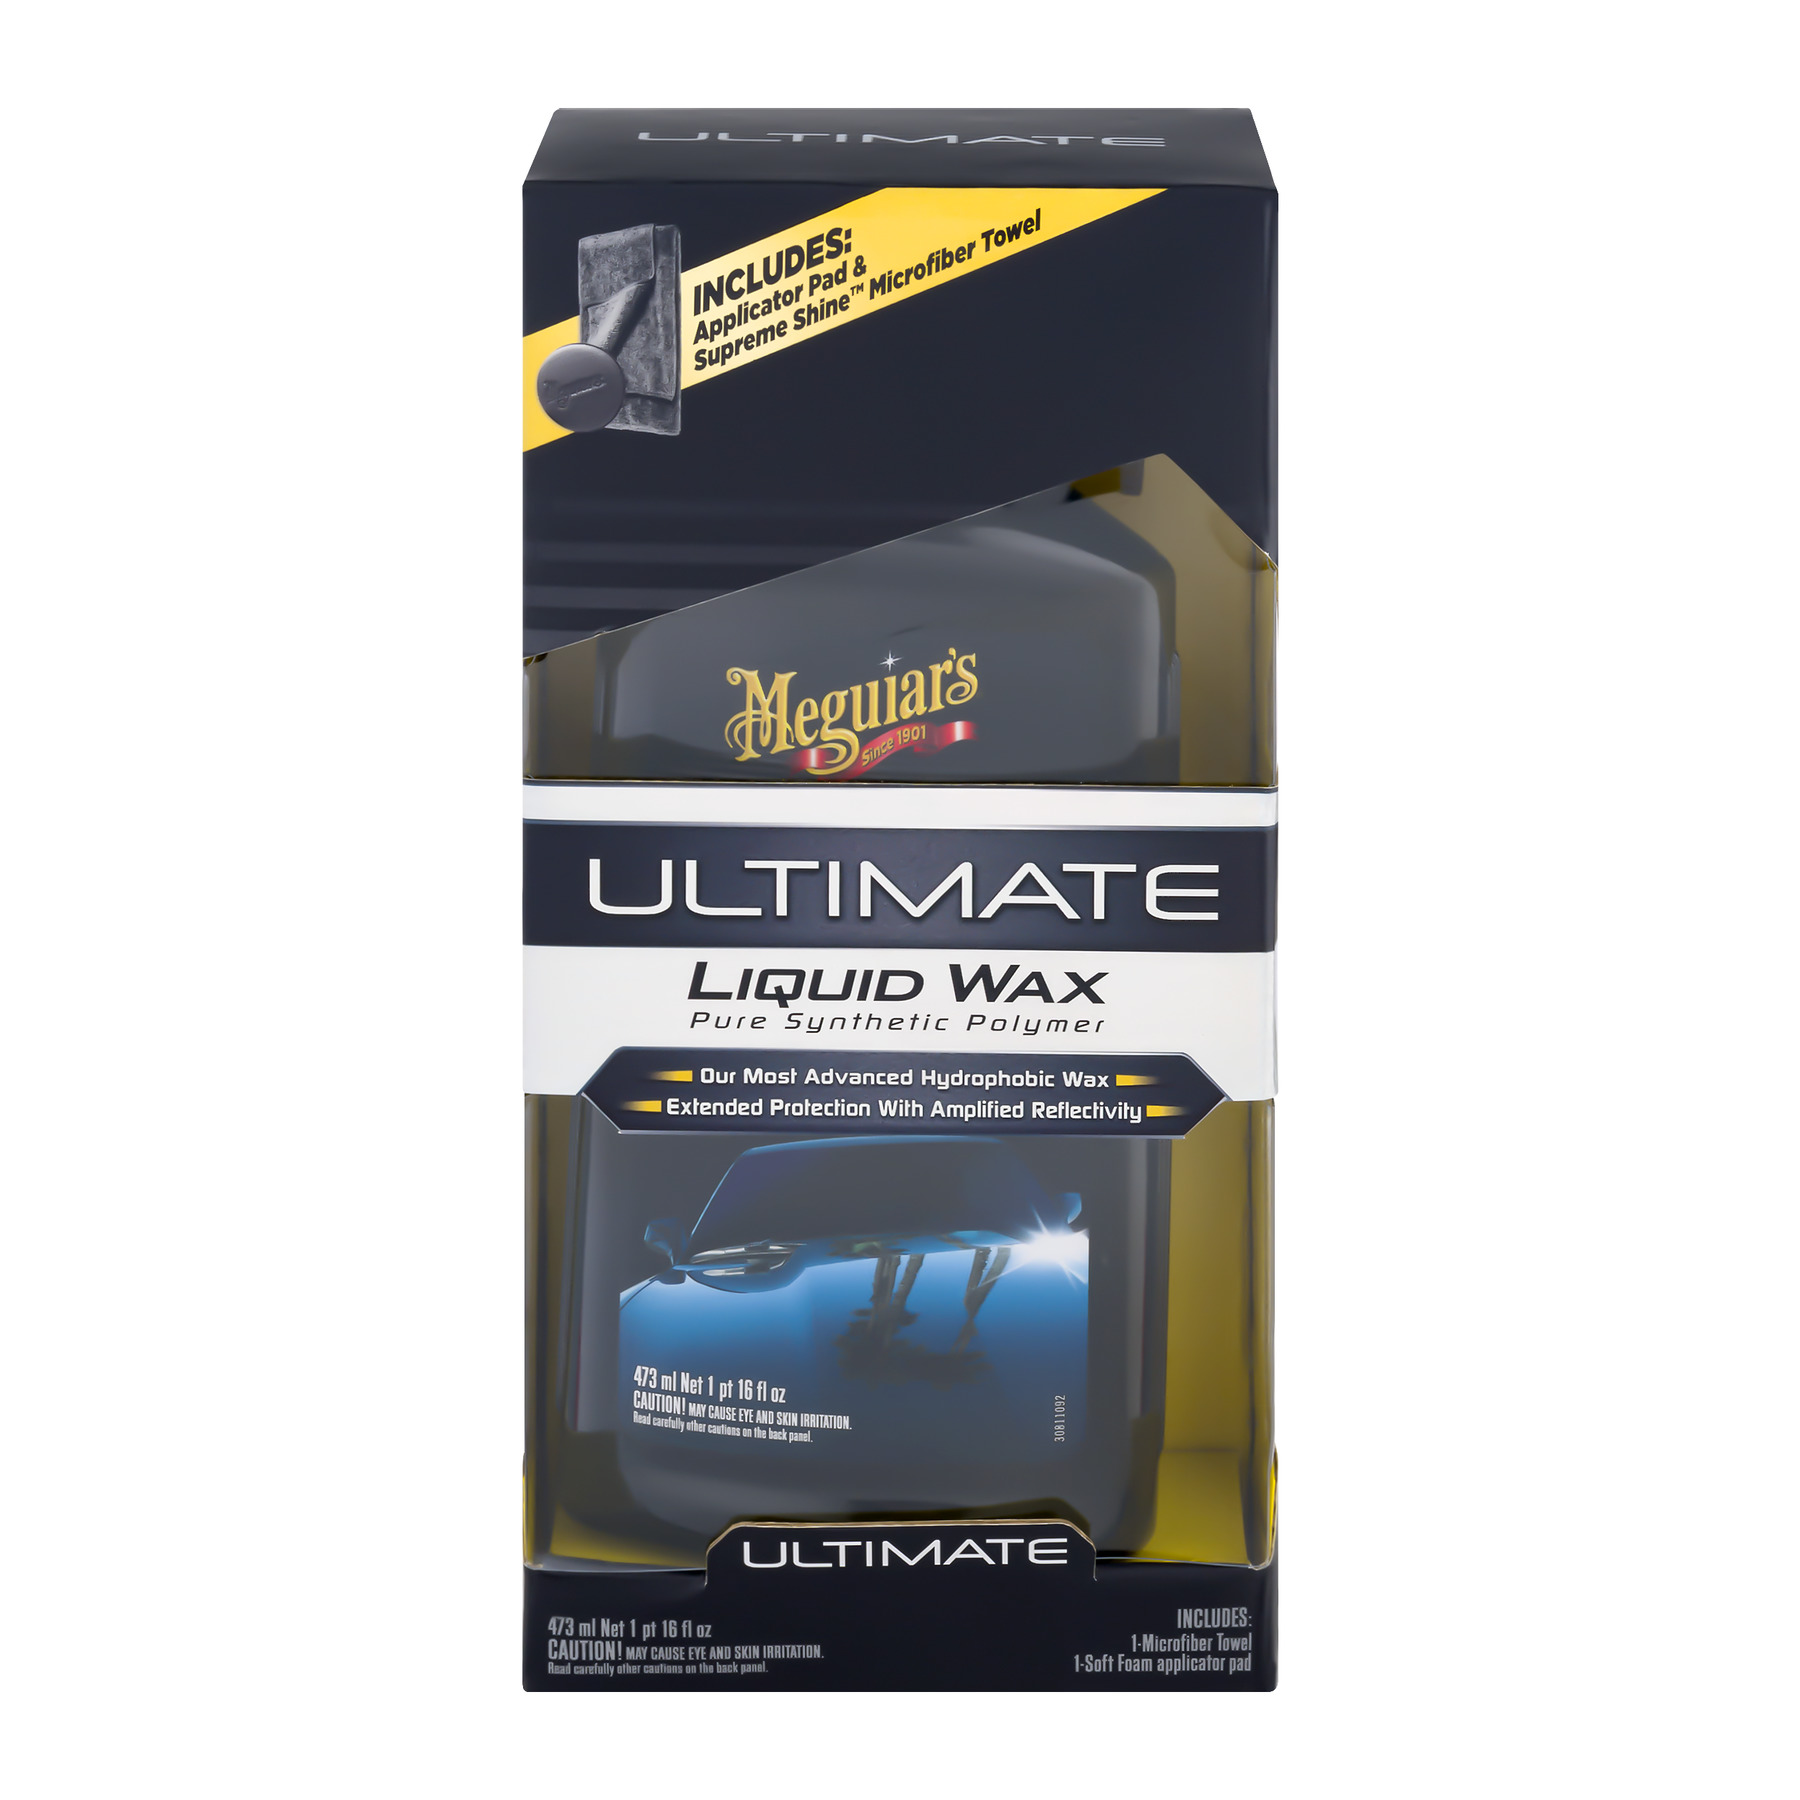 Meguiar's Ultimate Liquid Wax, 16.0 FL OZ